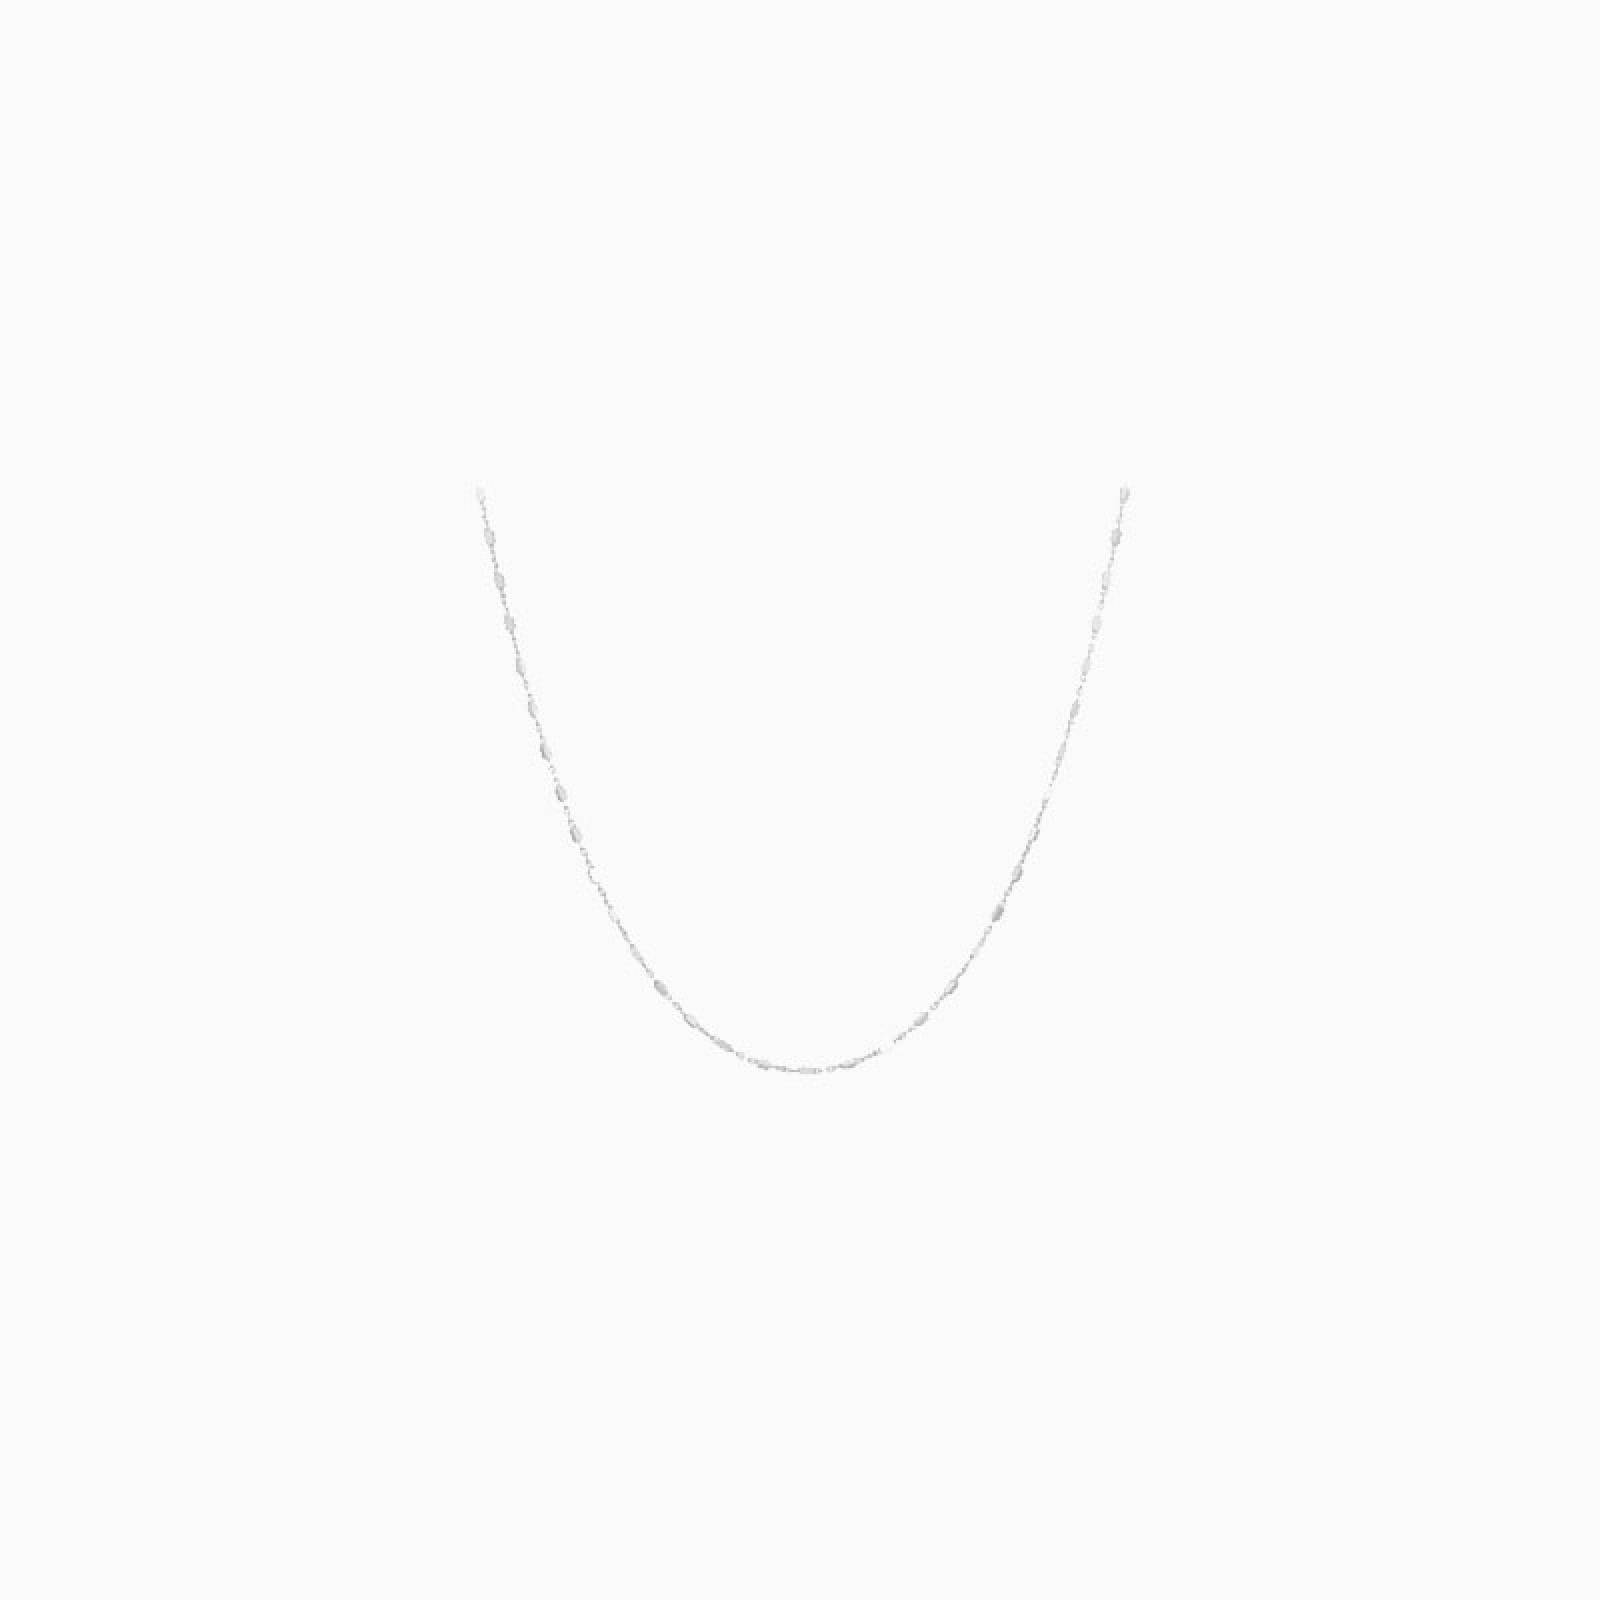 Silver Thea Necklace By Pernille Corydon